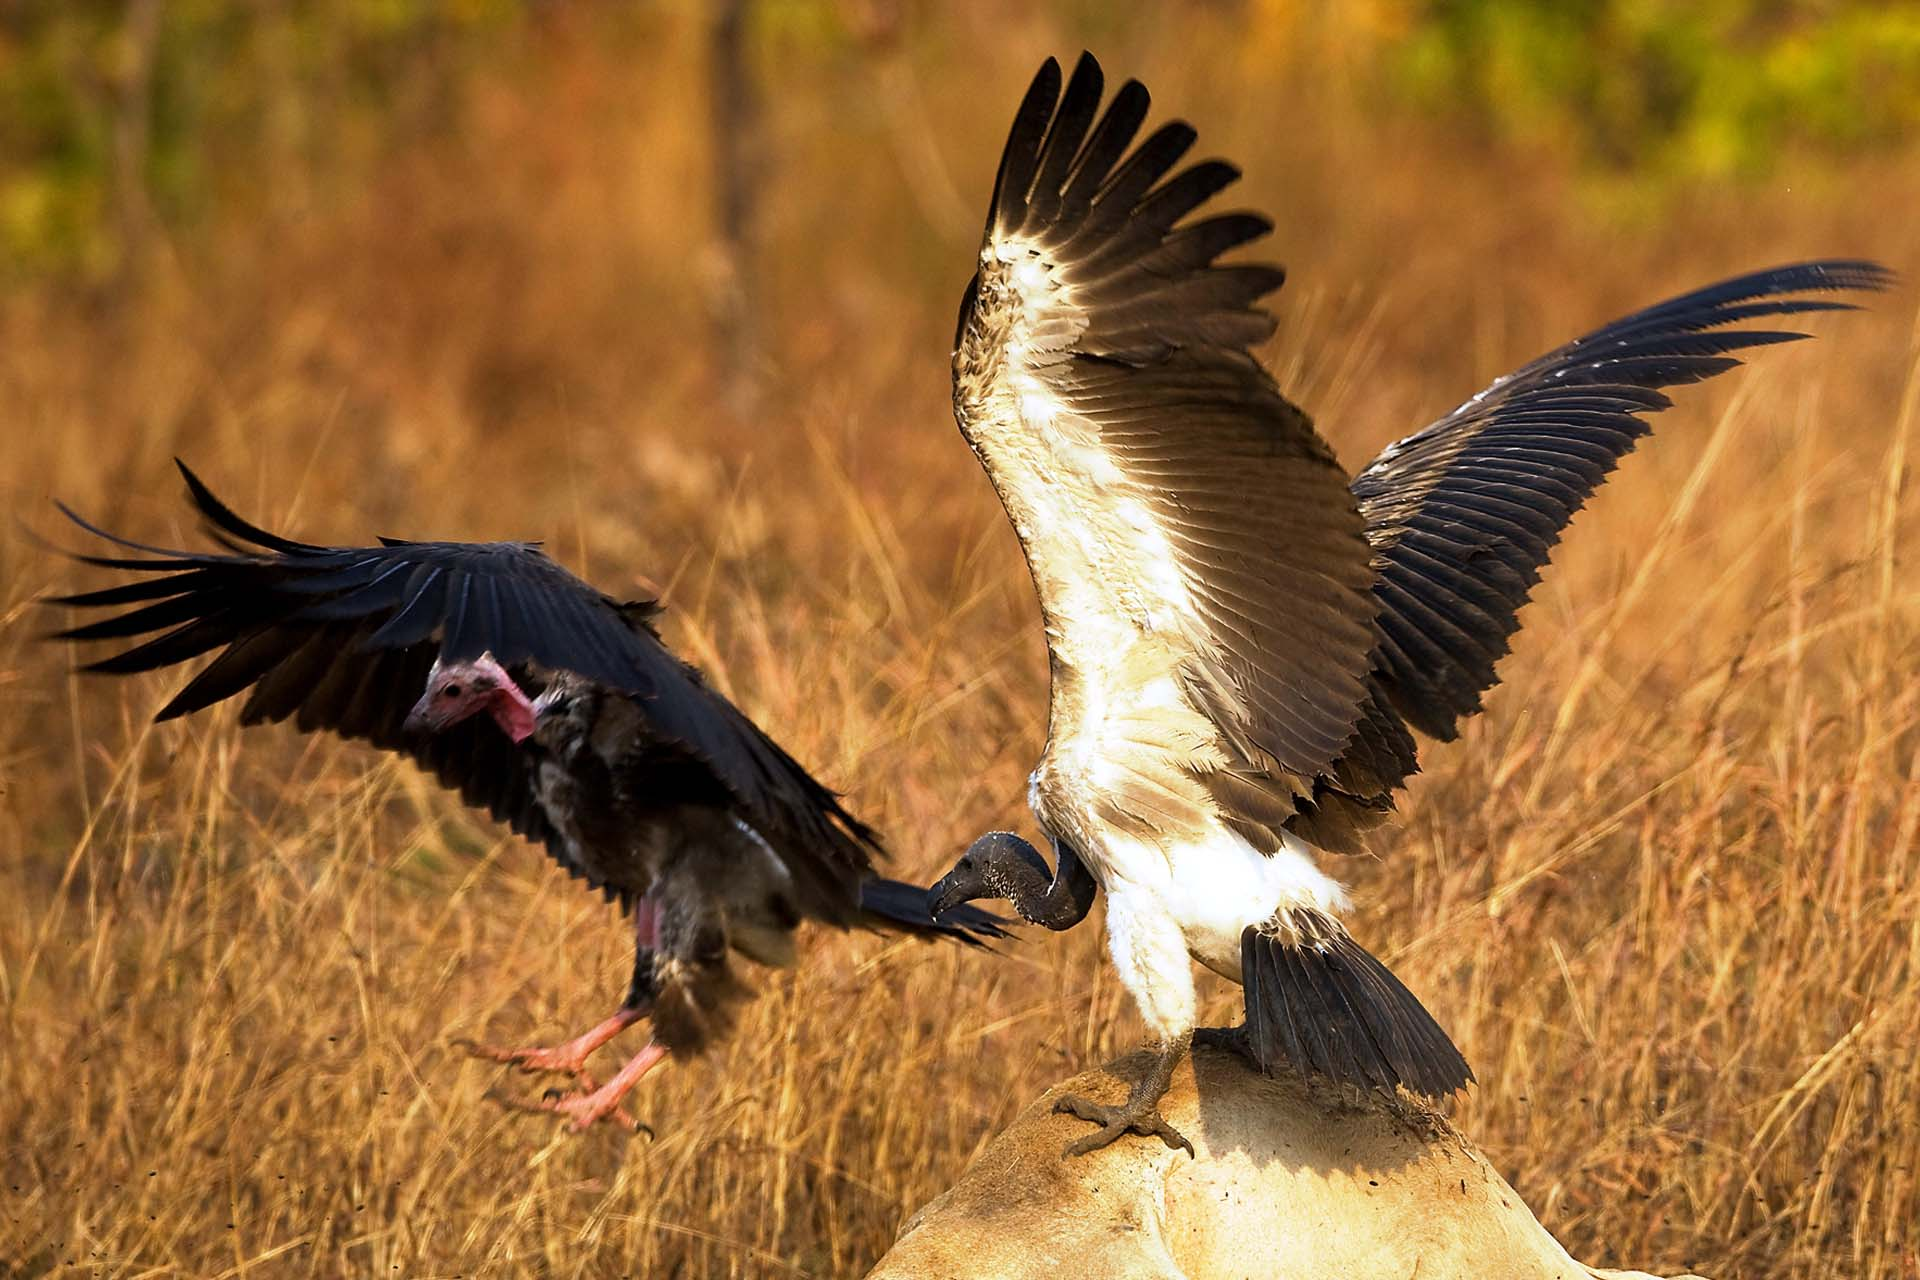 Red-headed and Slender-billed Vultures